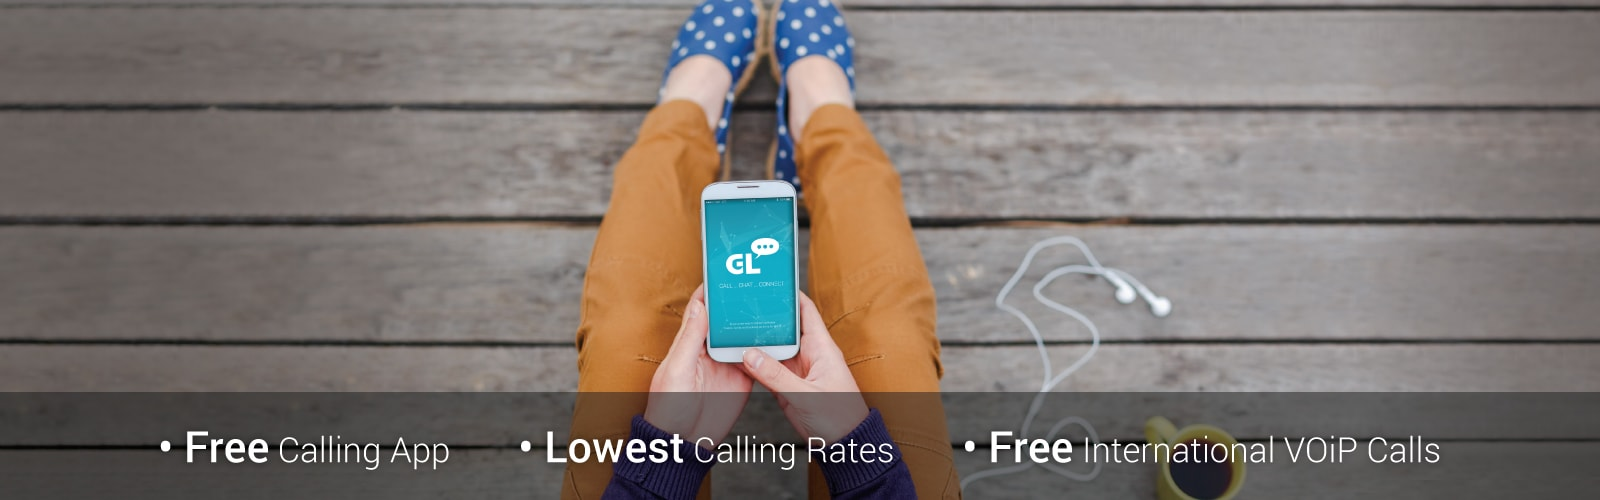 Free Calling App.Lowest Calling Rates.Free International VOiP Calls.